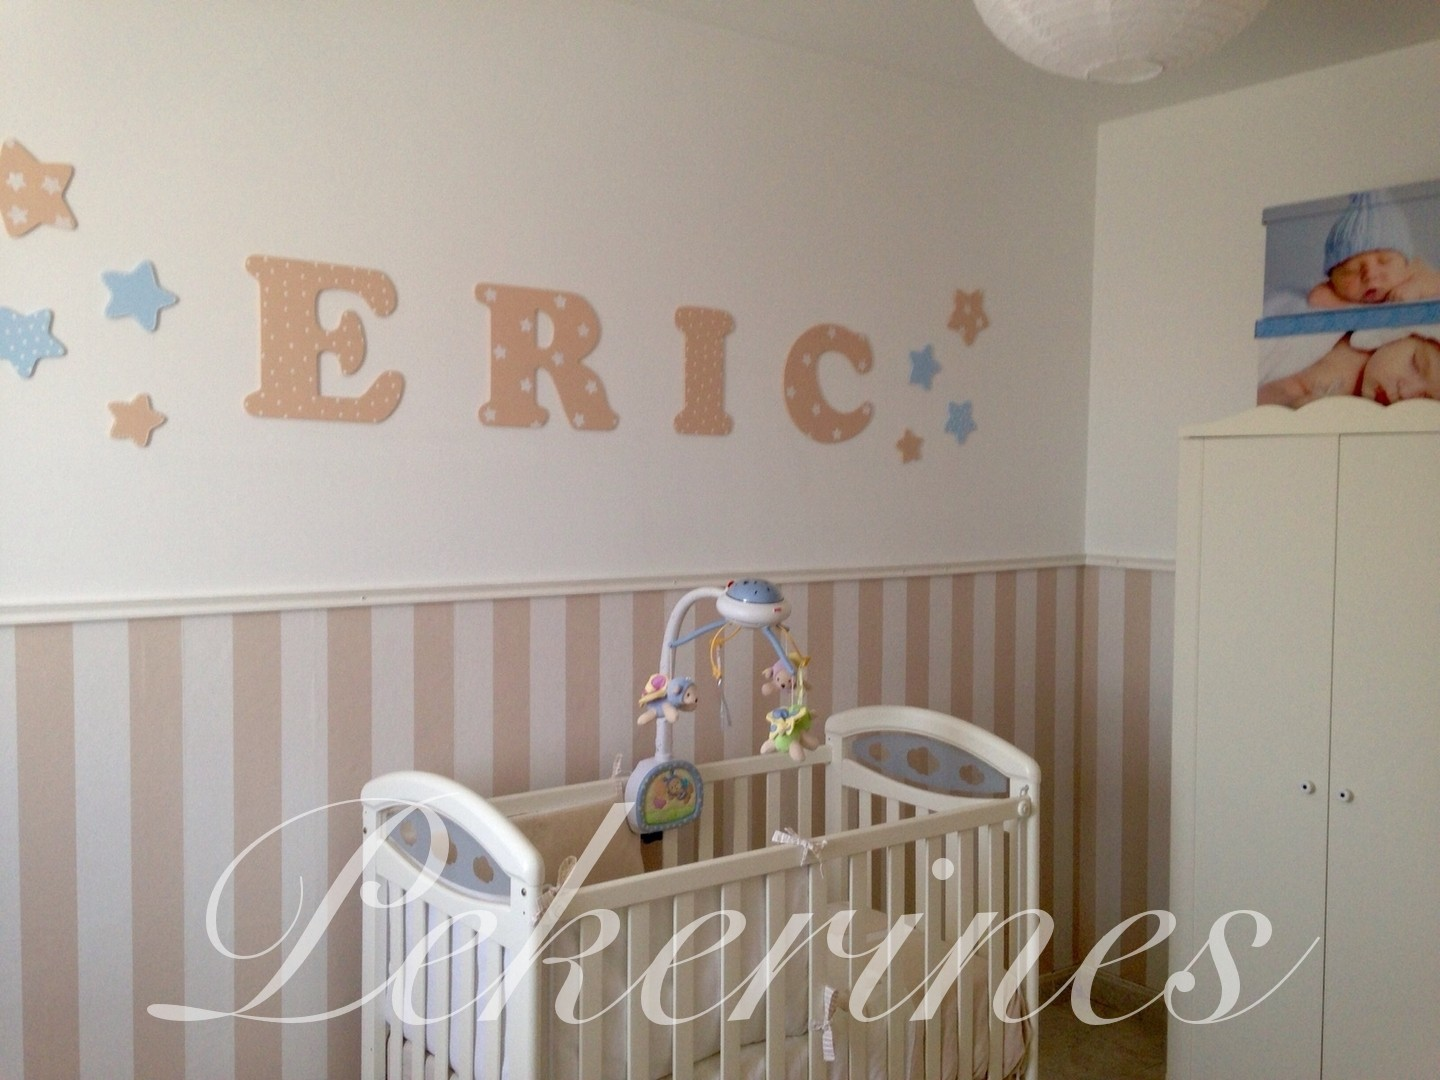 decoraci n infantil pekerines letras de madera para decorar